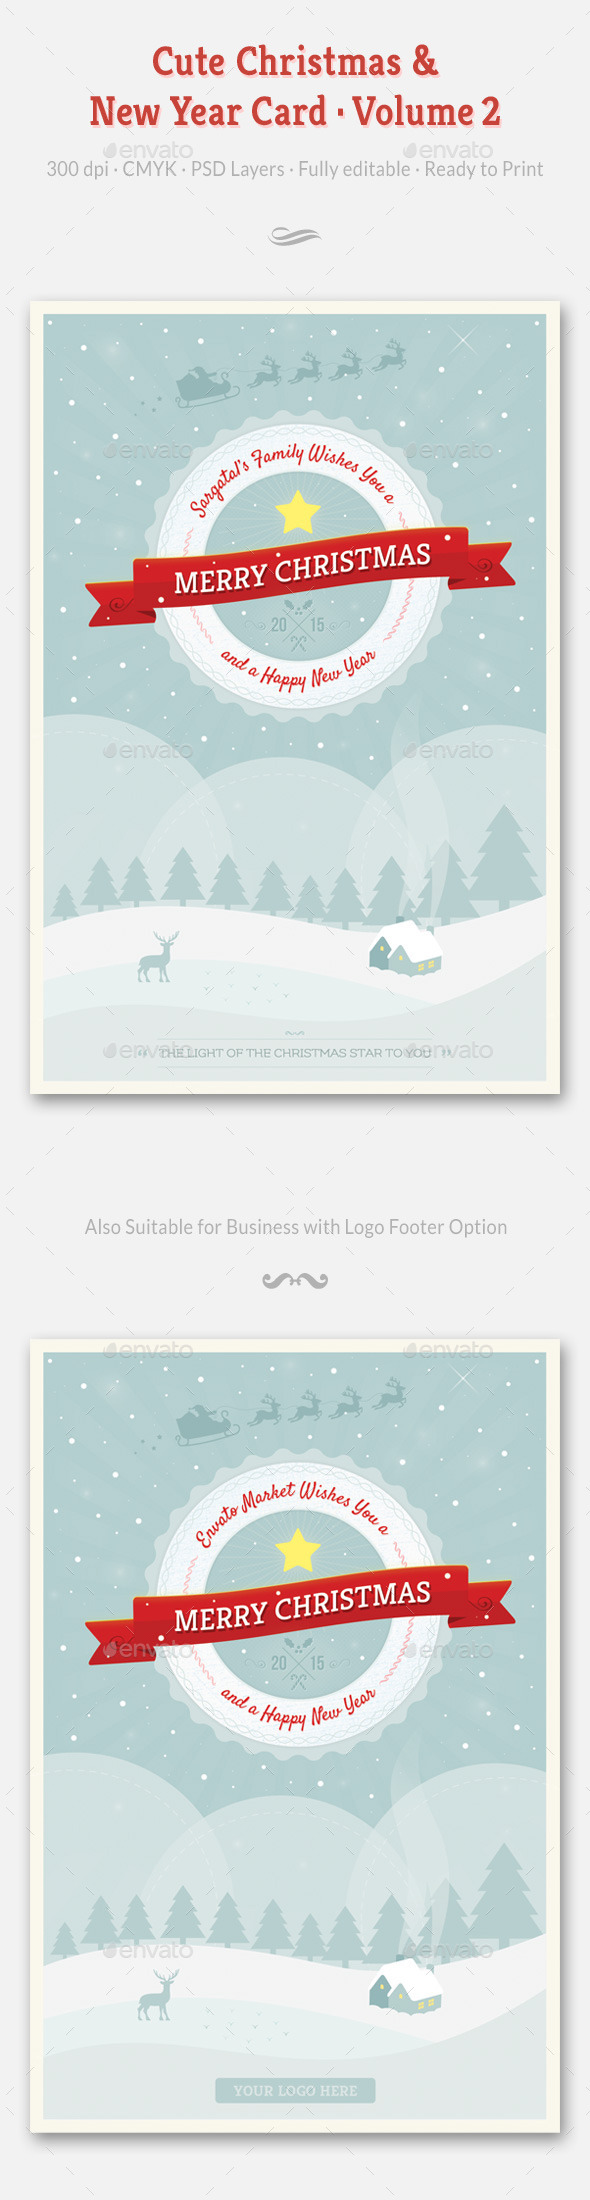 GraphicRiver Cute Christmas and New Year Card Volume 02 9450072